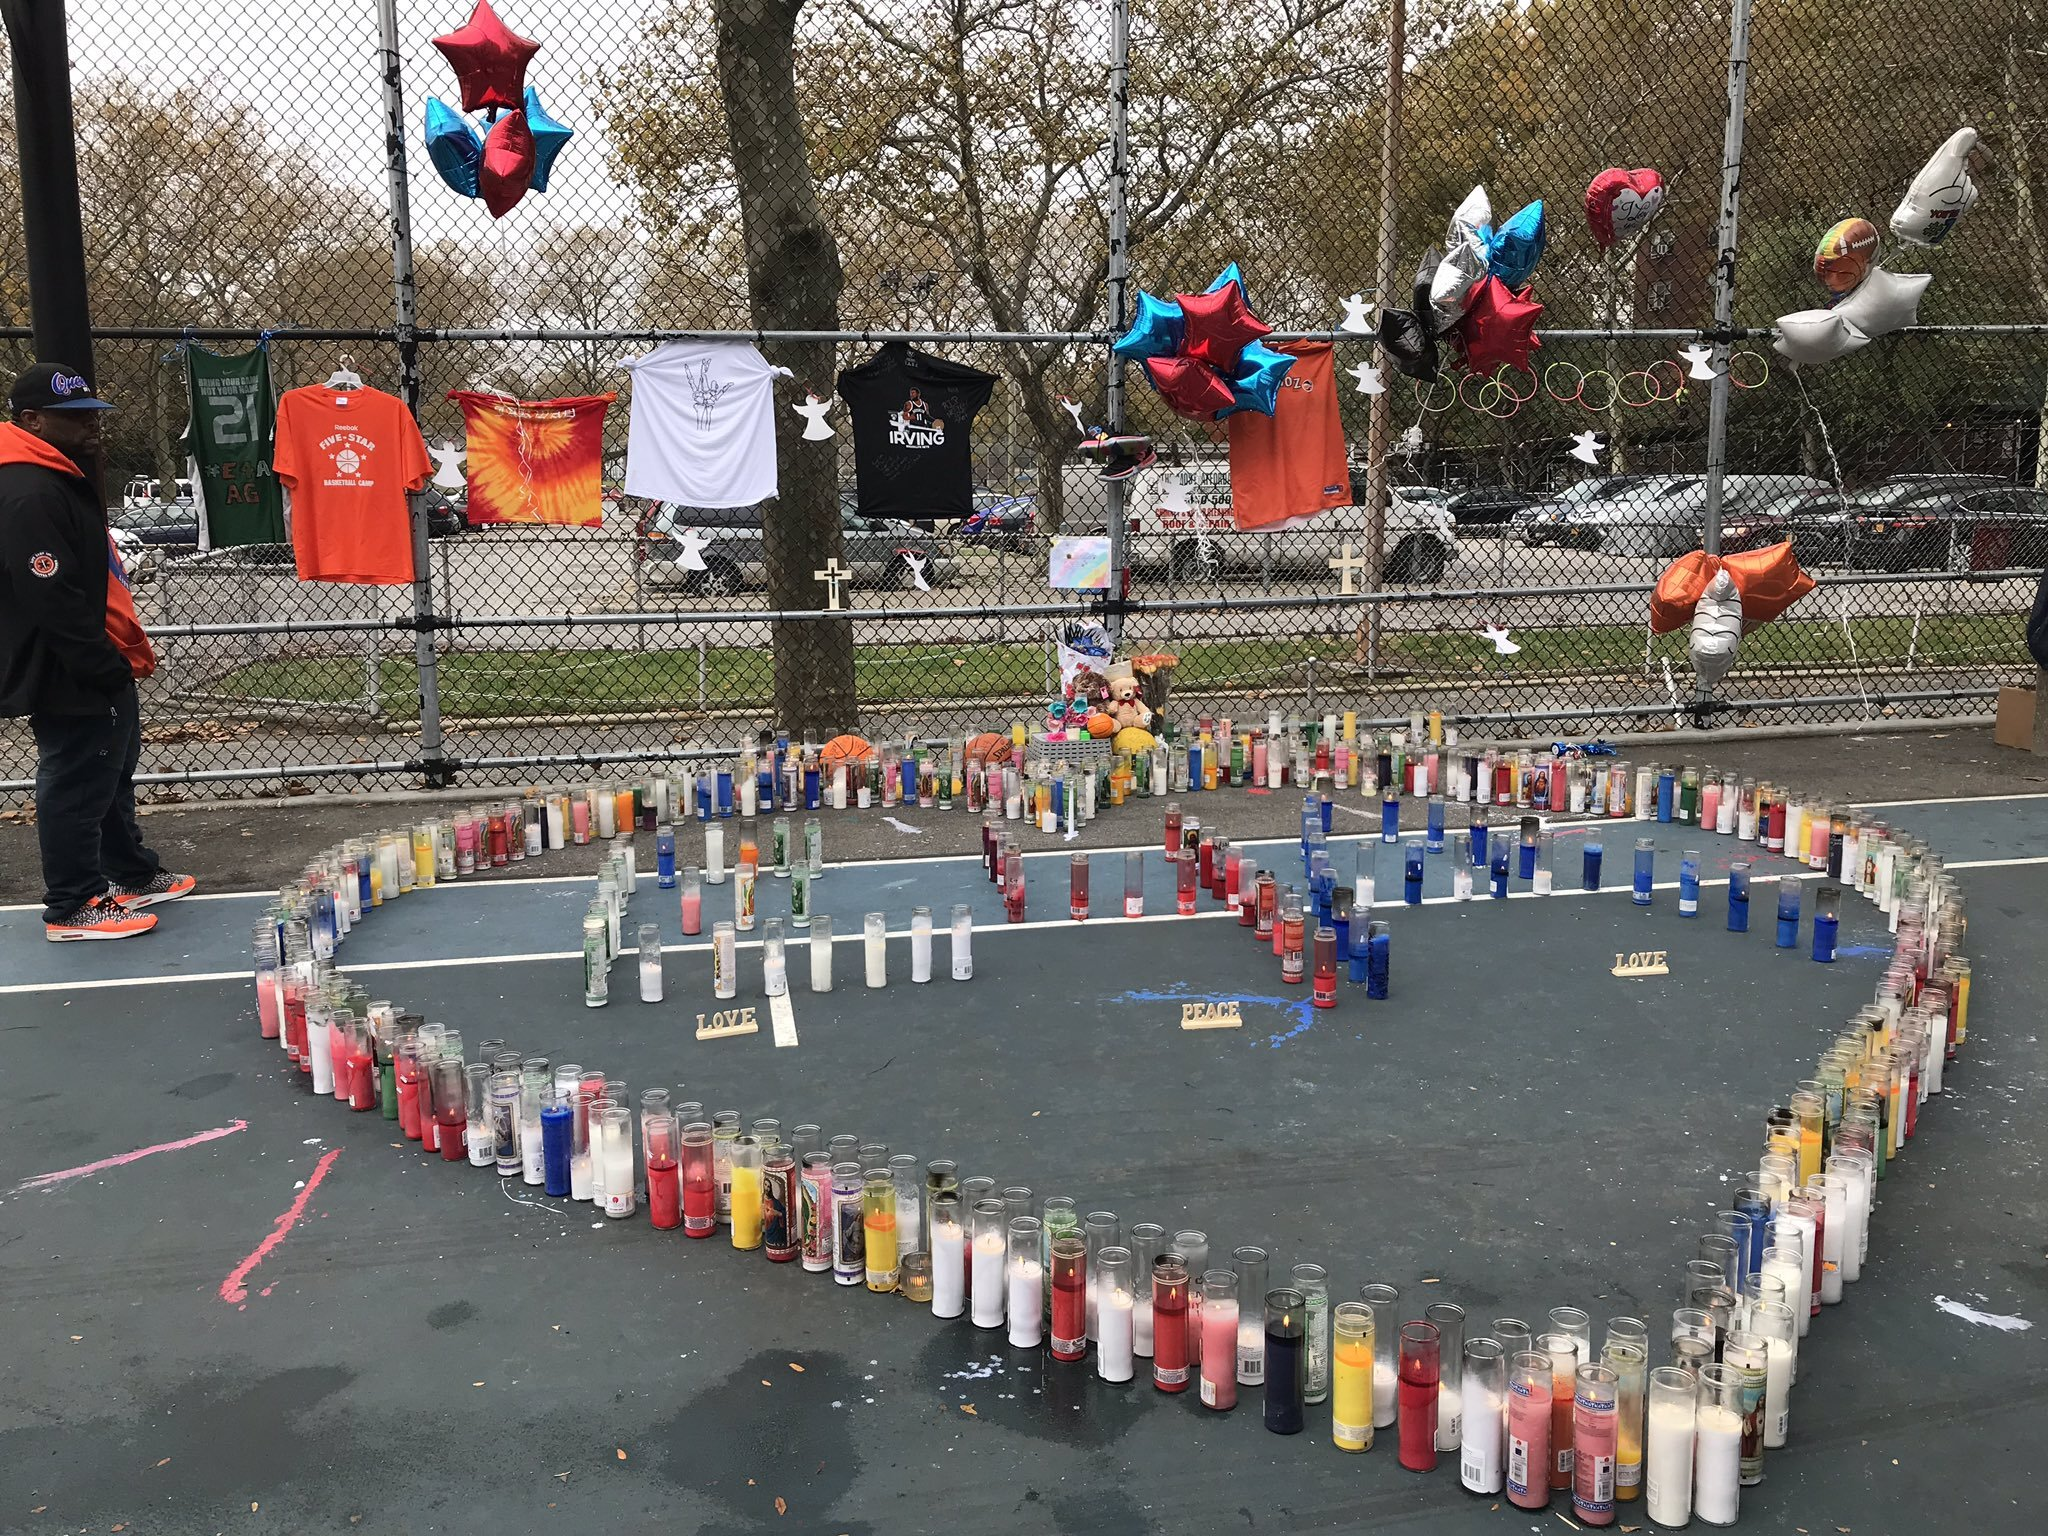 Votive candles arranged in a heart covered a piece of the basketball court where 14-year-old Amir Griffin was shot and killed on Saturday.